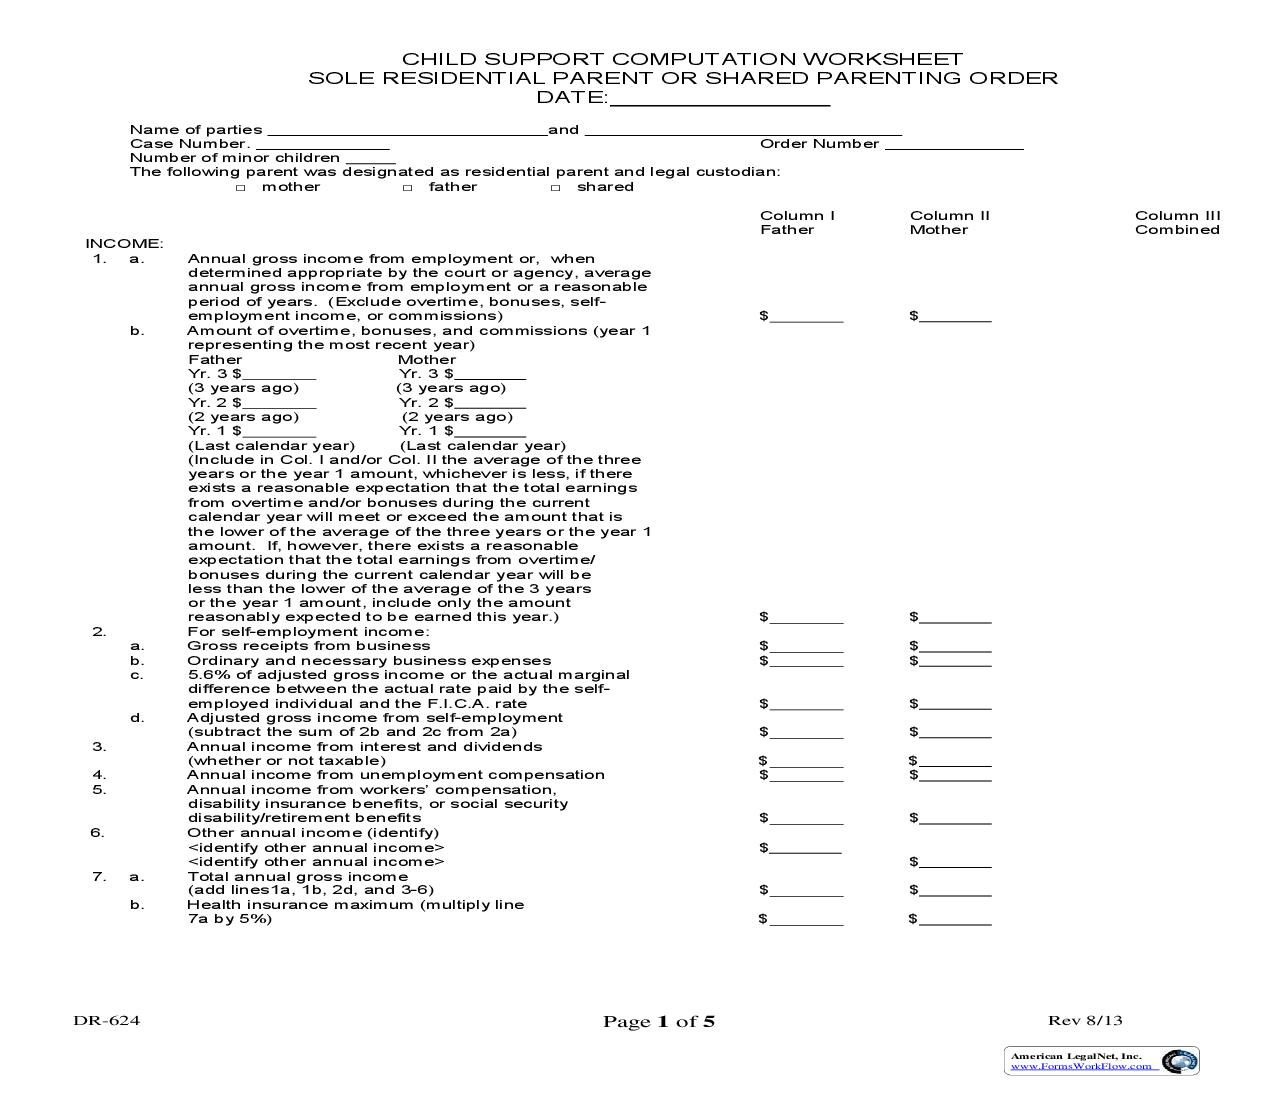 Child Support Computation Worksheet Sole Residential Parents Or Shared Parenting Order {DR-624} | Pdf Fpdf Doc Docx | Ohio